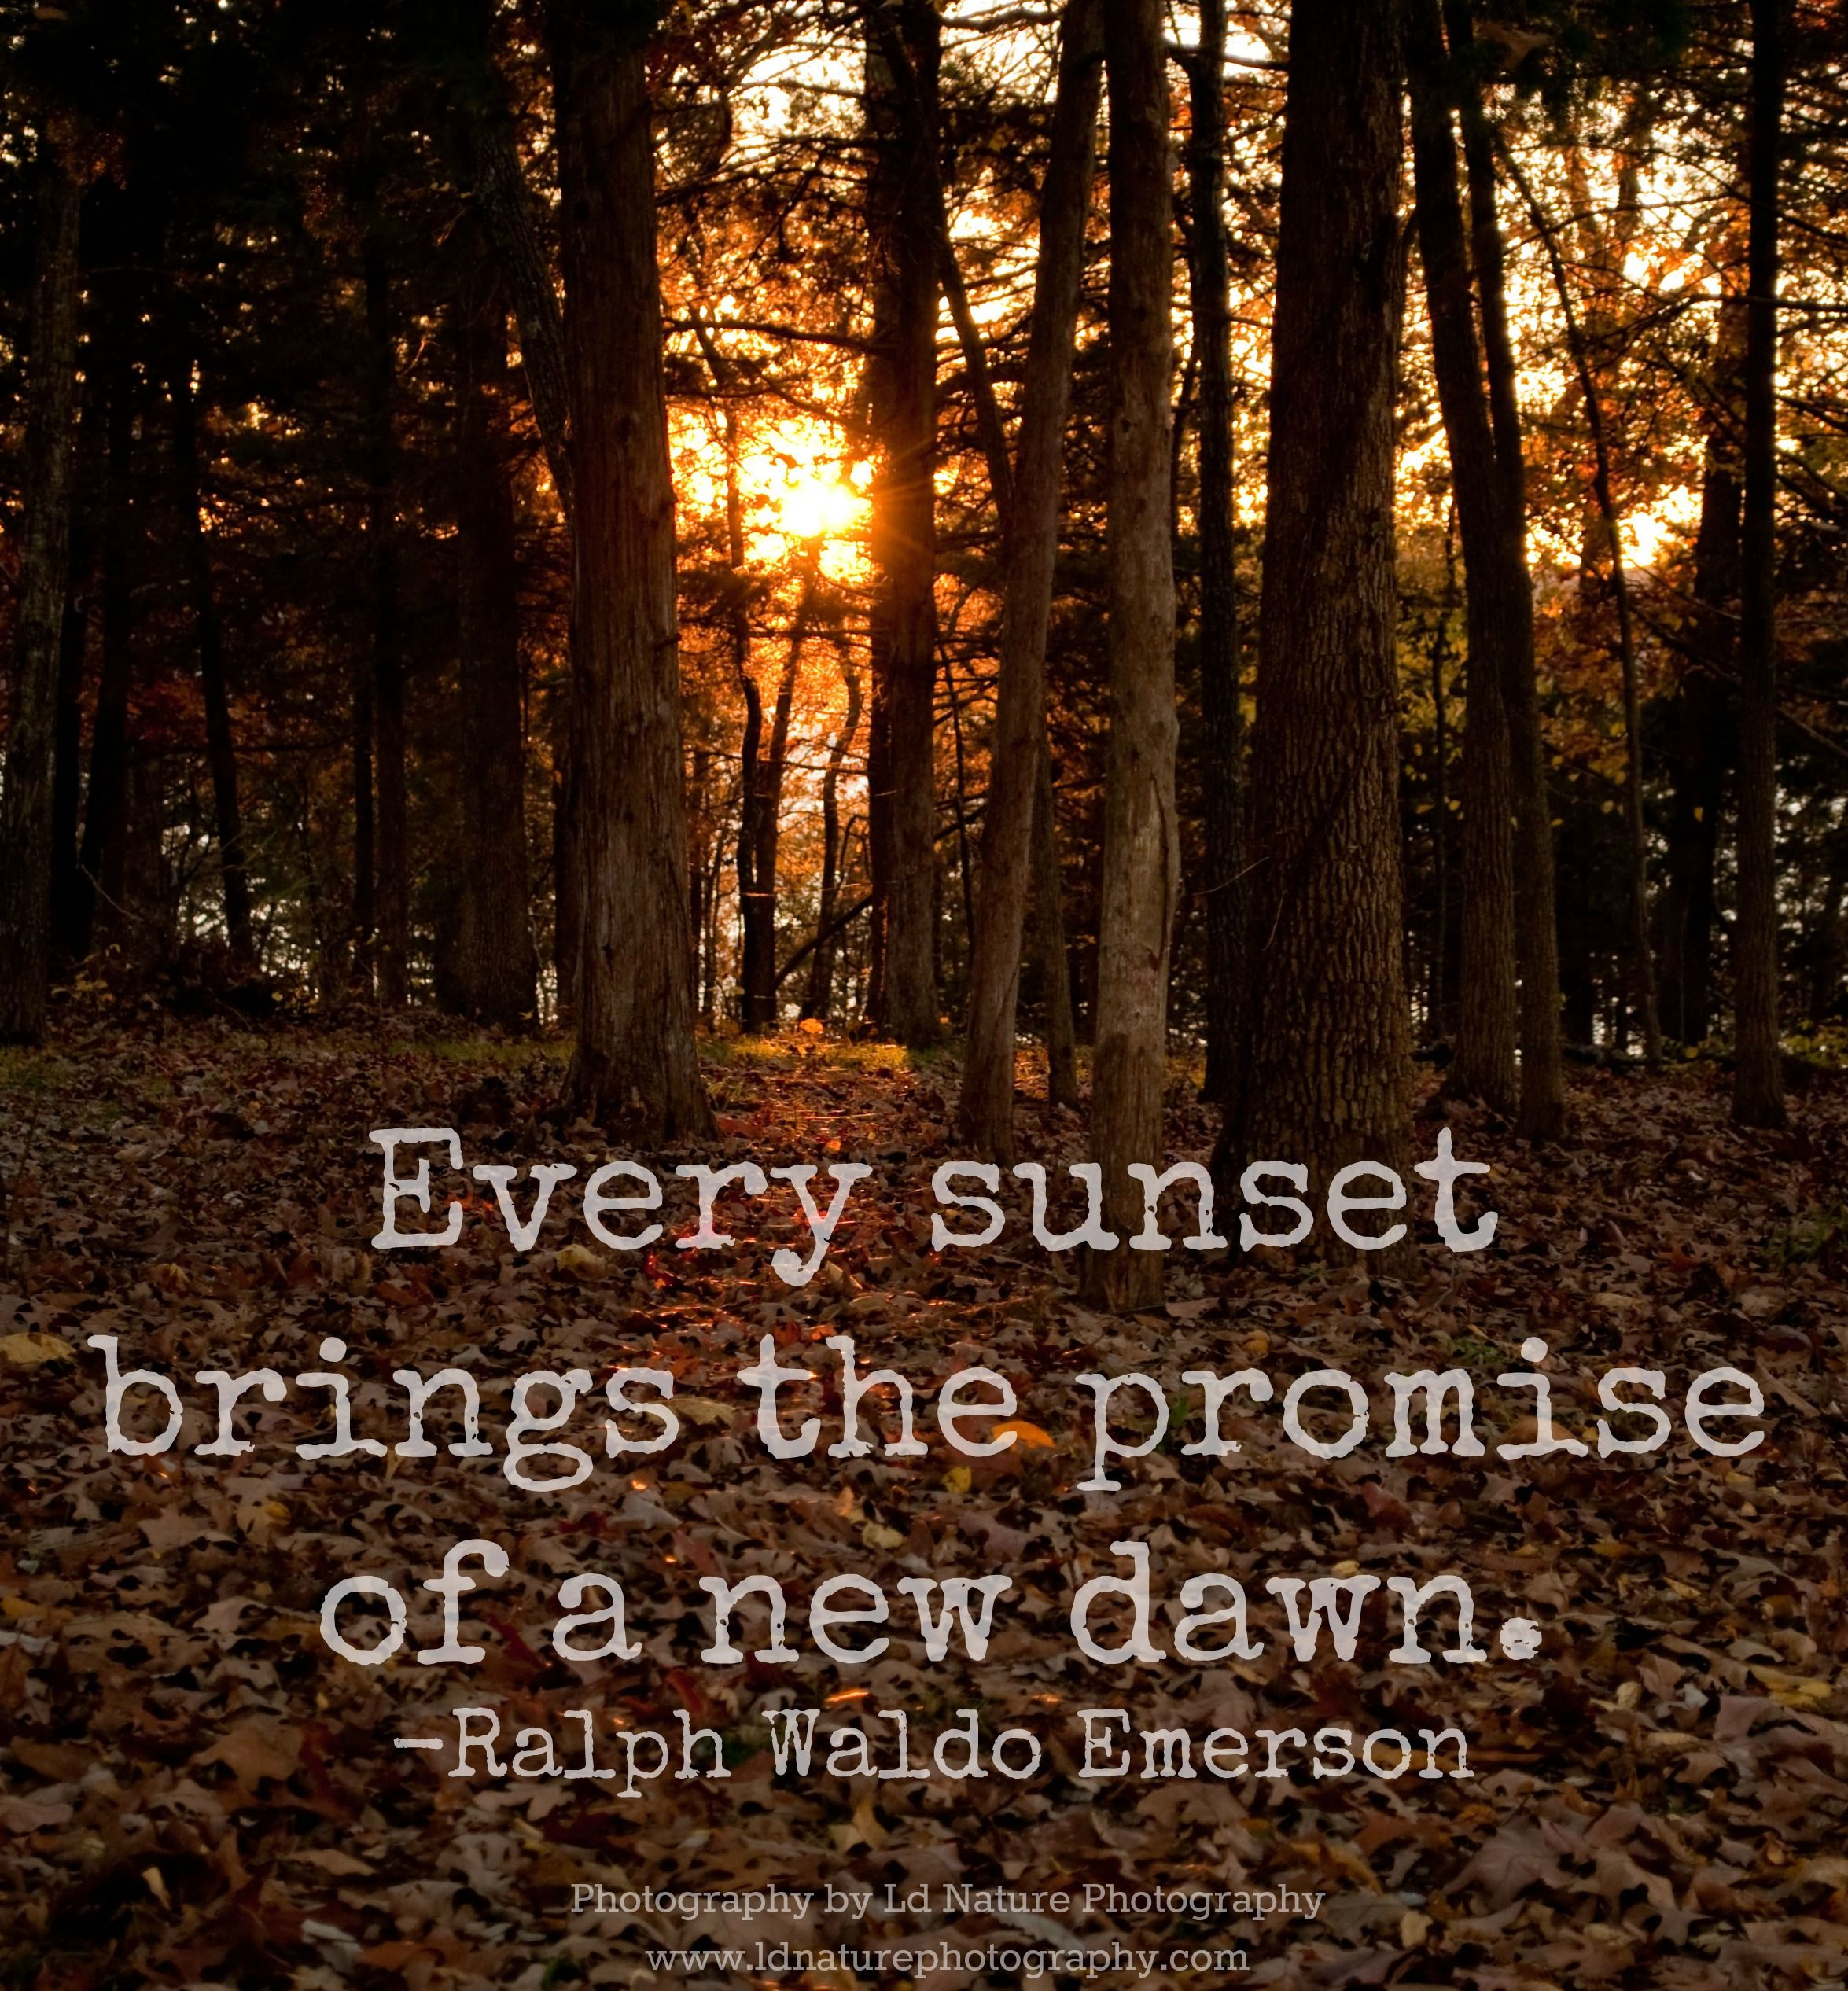 Pin On Nature & Photography Quotes